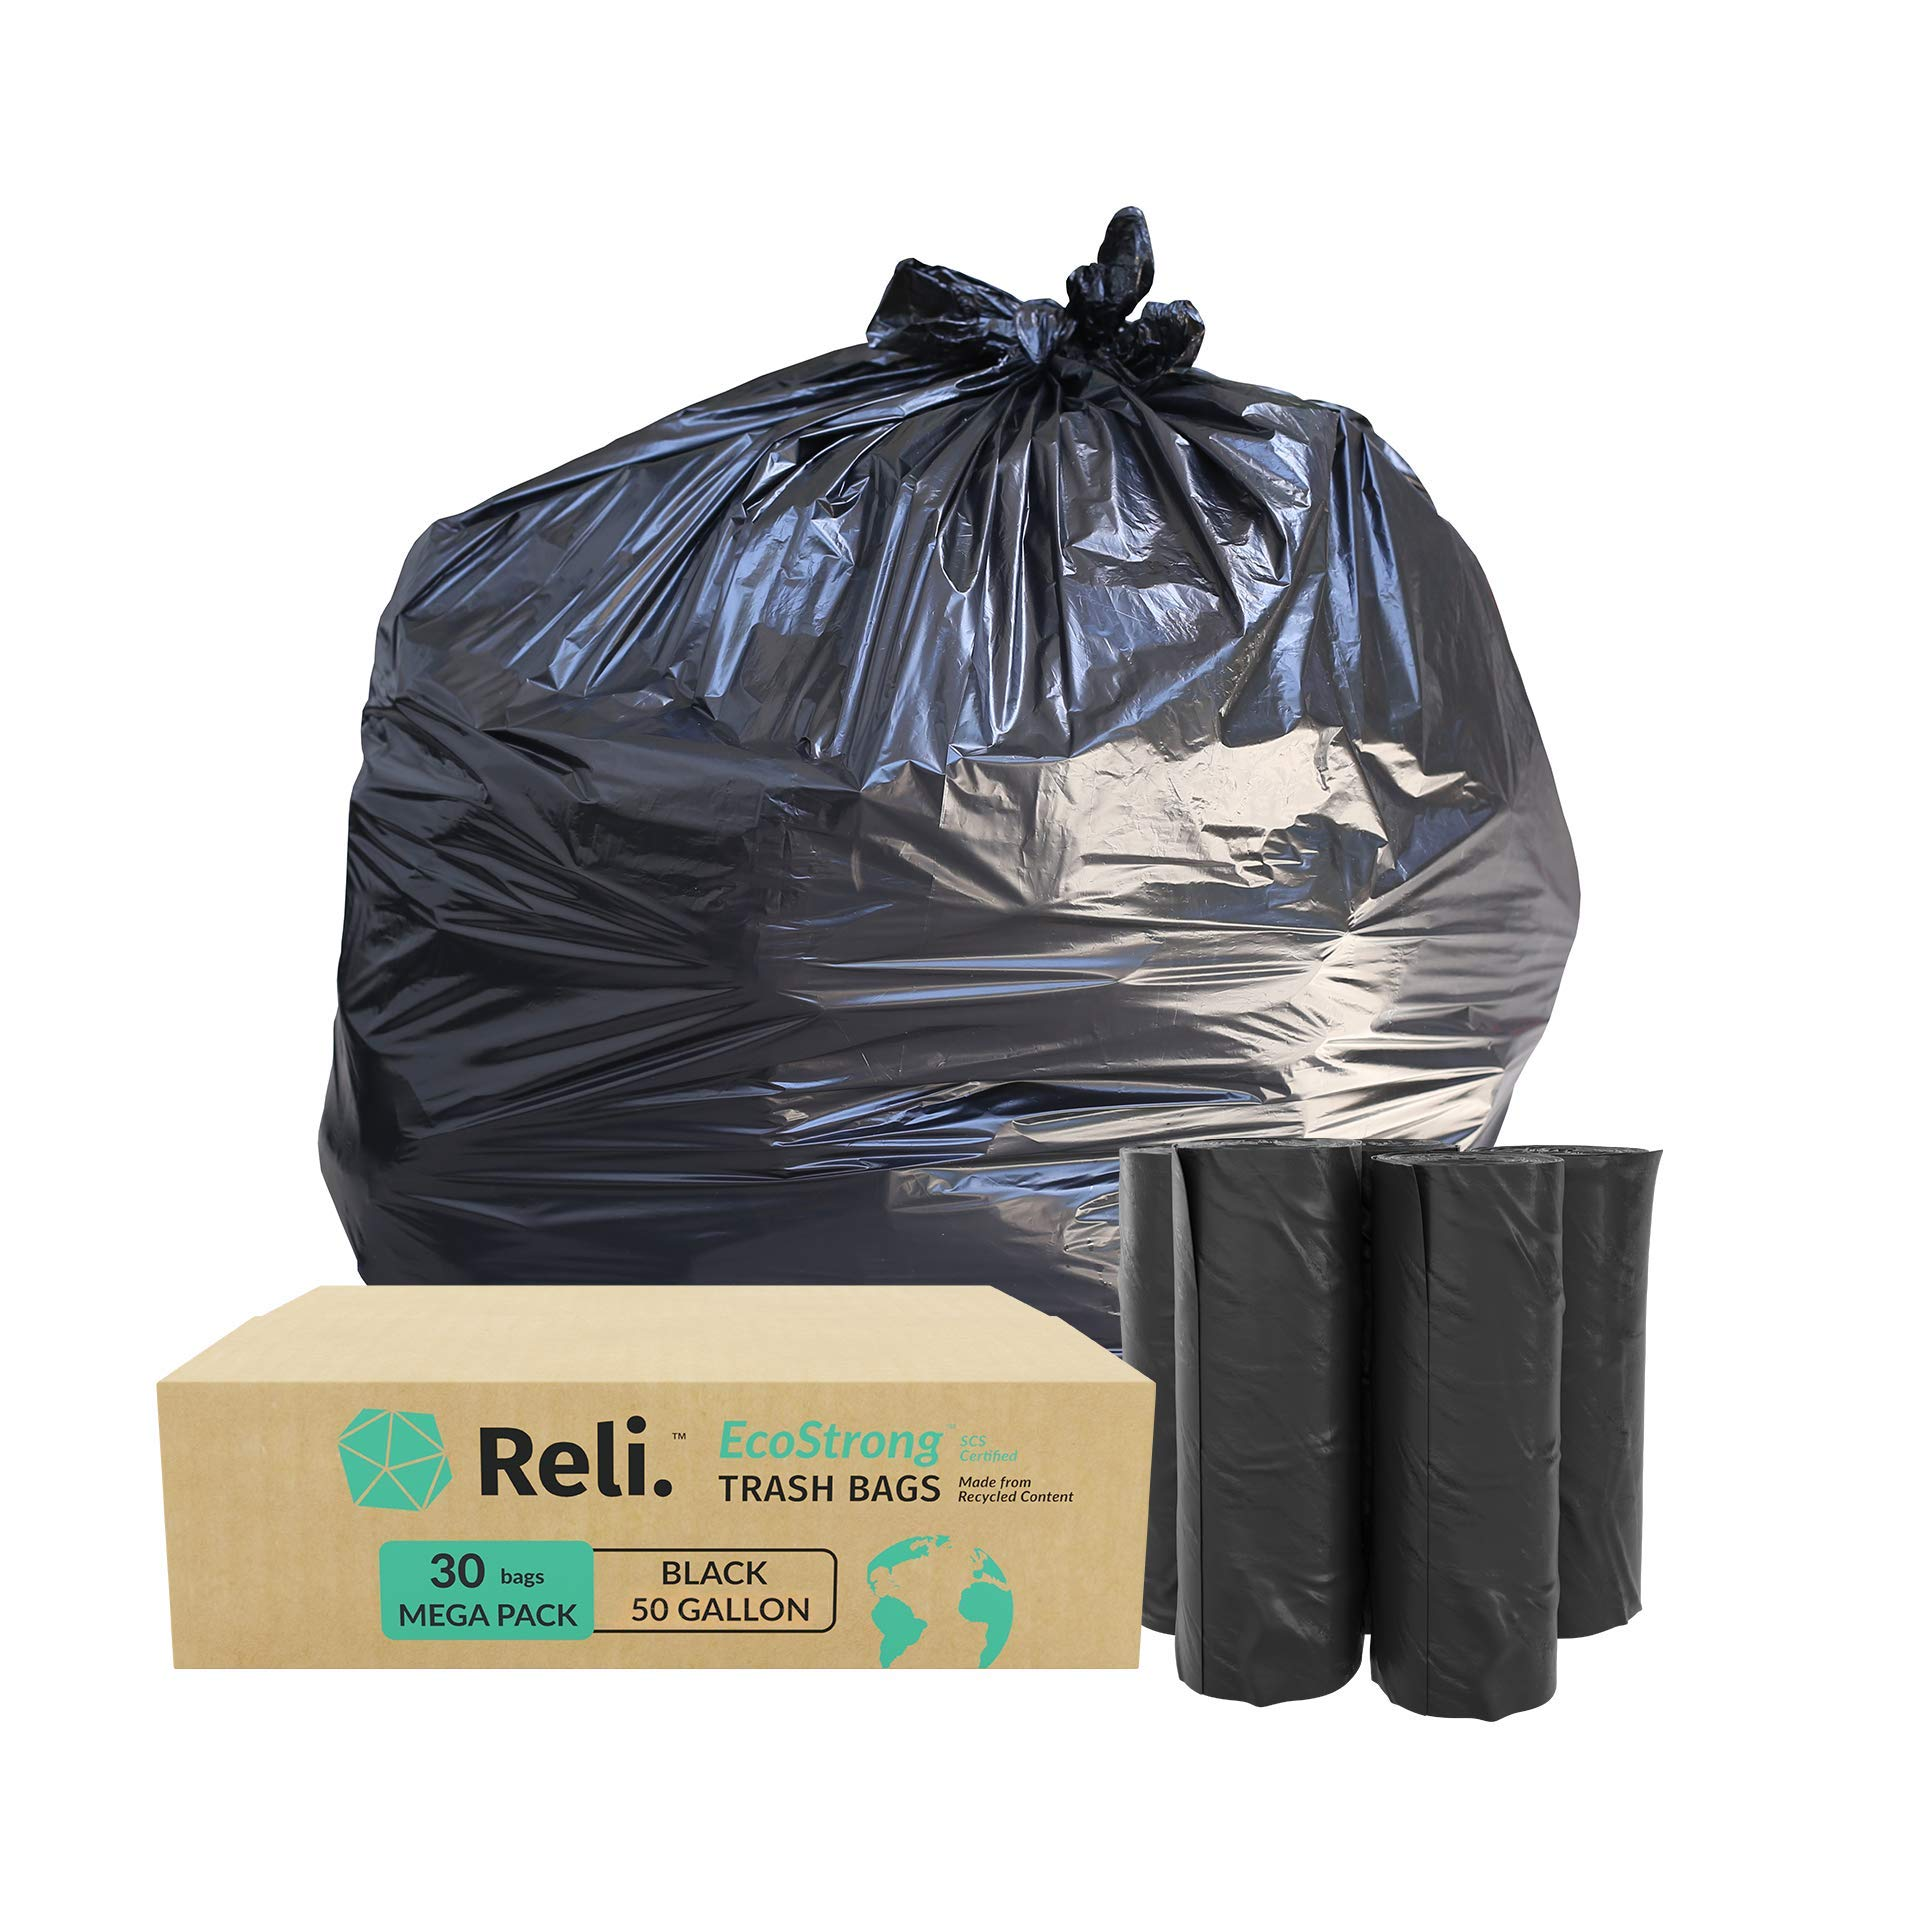 Reli. EcoStrong 50 Gallon Trash Bags (30 Count) Eco-Friendly Recyclable, Black 50 Gallon Garbage Bag - Made From Recycled Material - Recyclable Garbage Bags 39 Gal - 40 Gal - 45 Gal Compatible